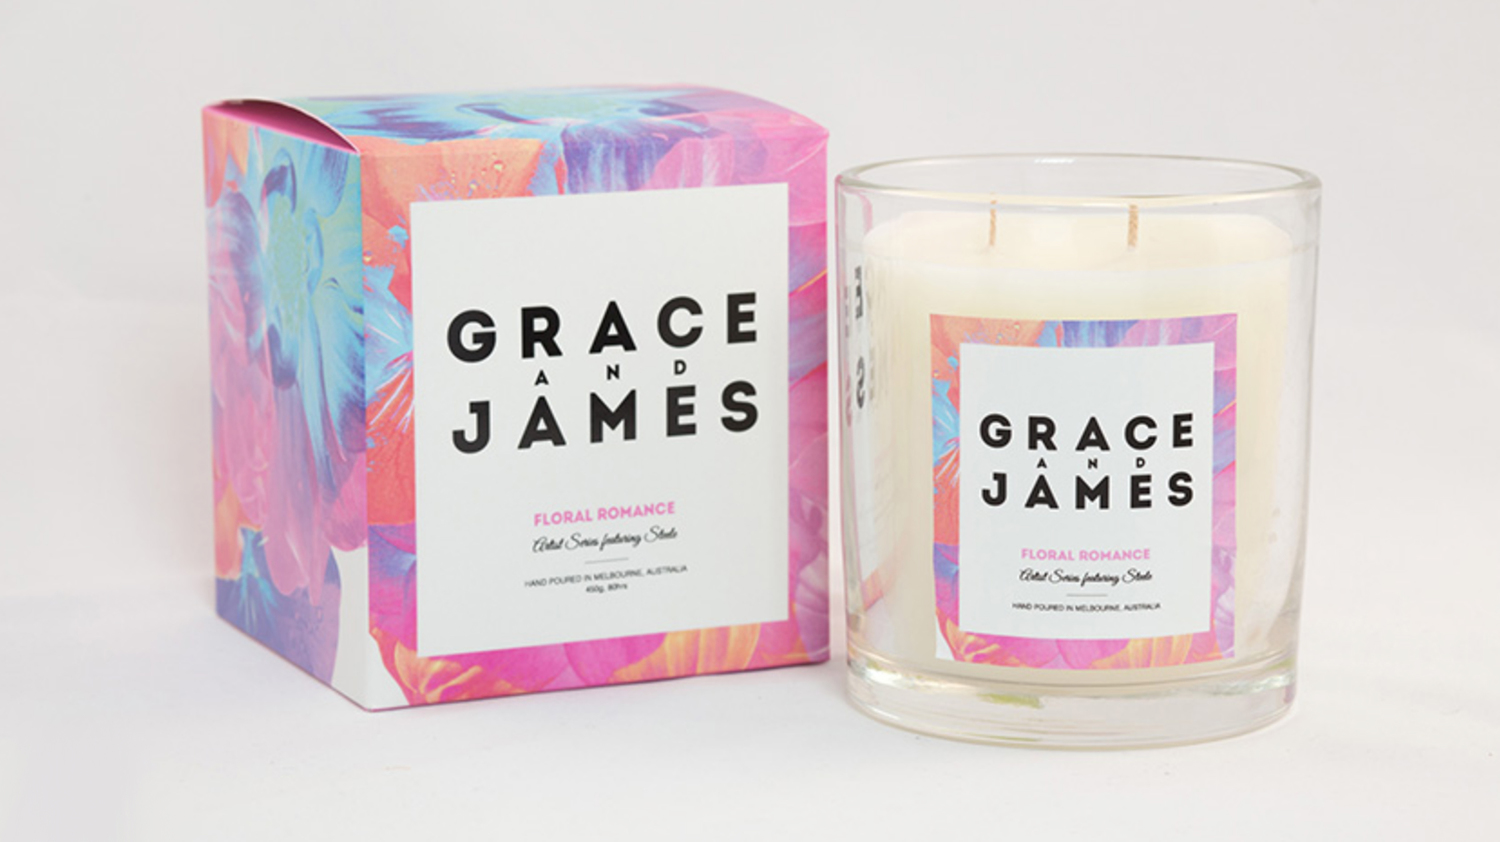 Grace and James Candle Packaging 3